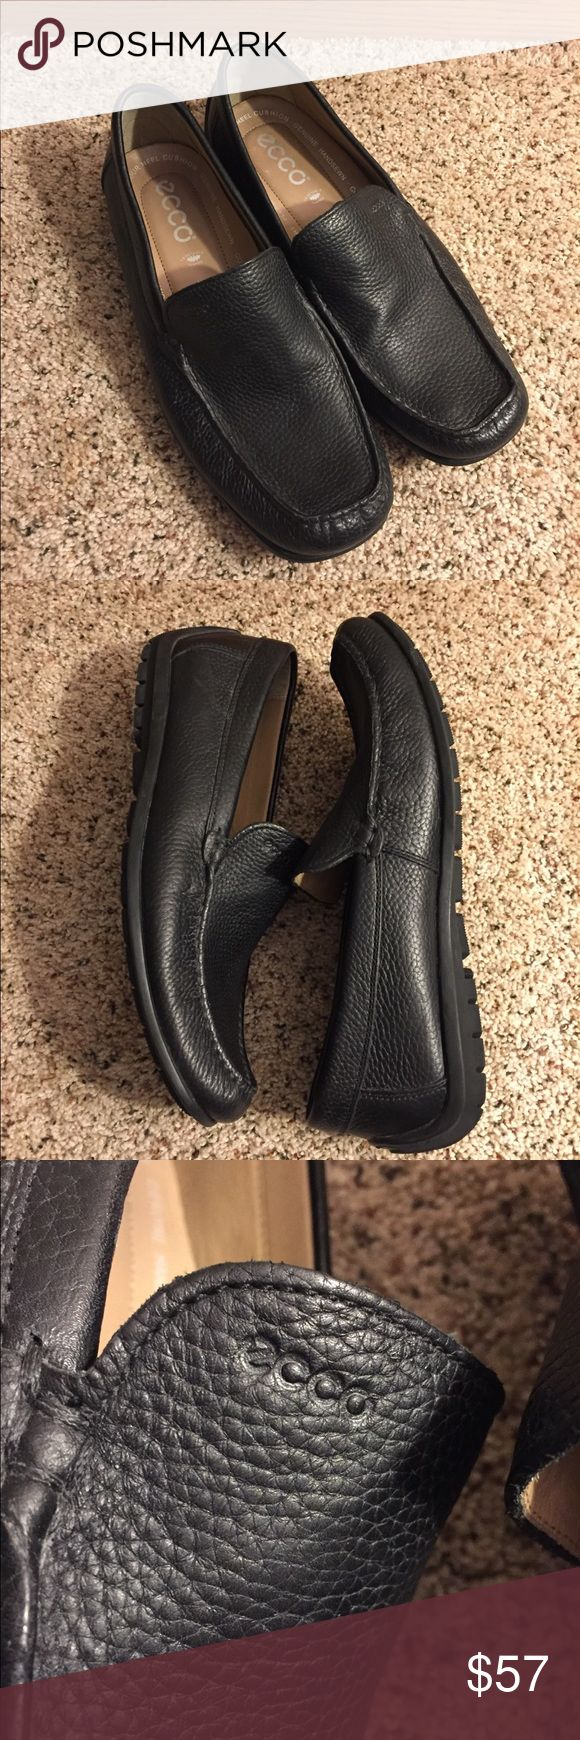 🔆Mens ECCO Classic Black Leather Loafers🔆 Men's ECCO Classic Black Leather loafers. Gently used. Shows light wear. Shoe size is 43 Euro (according to ECCO sizing chart they are US 9-9 1/2) See pics for details. ECCO Shoes Loafers & Slip-Ons